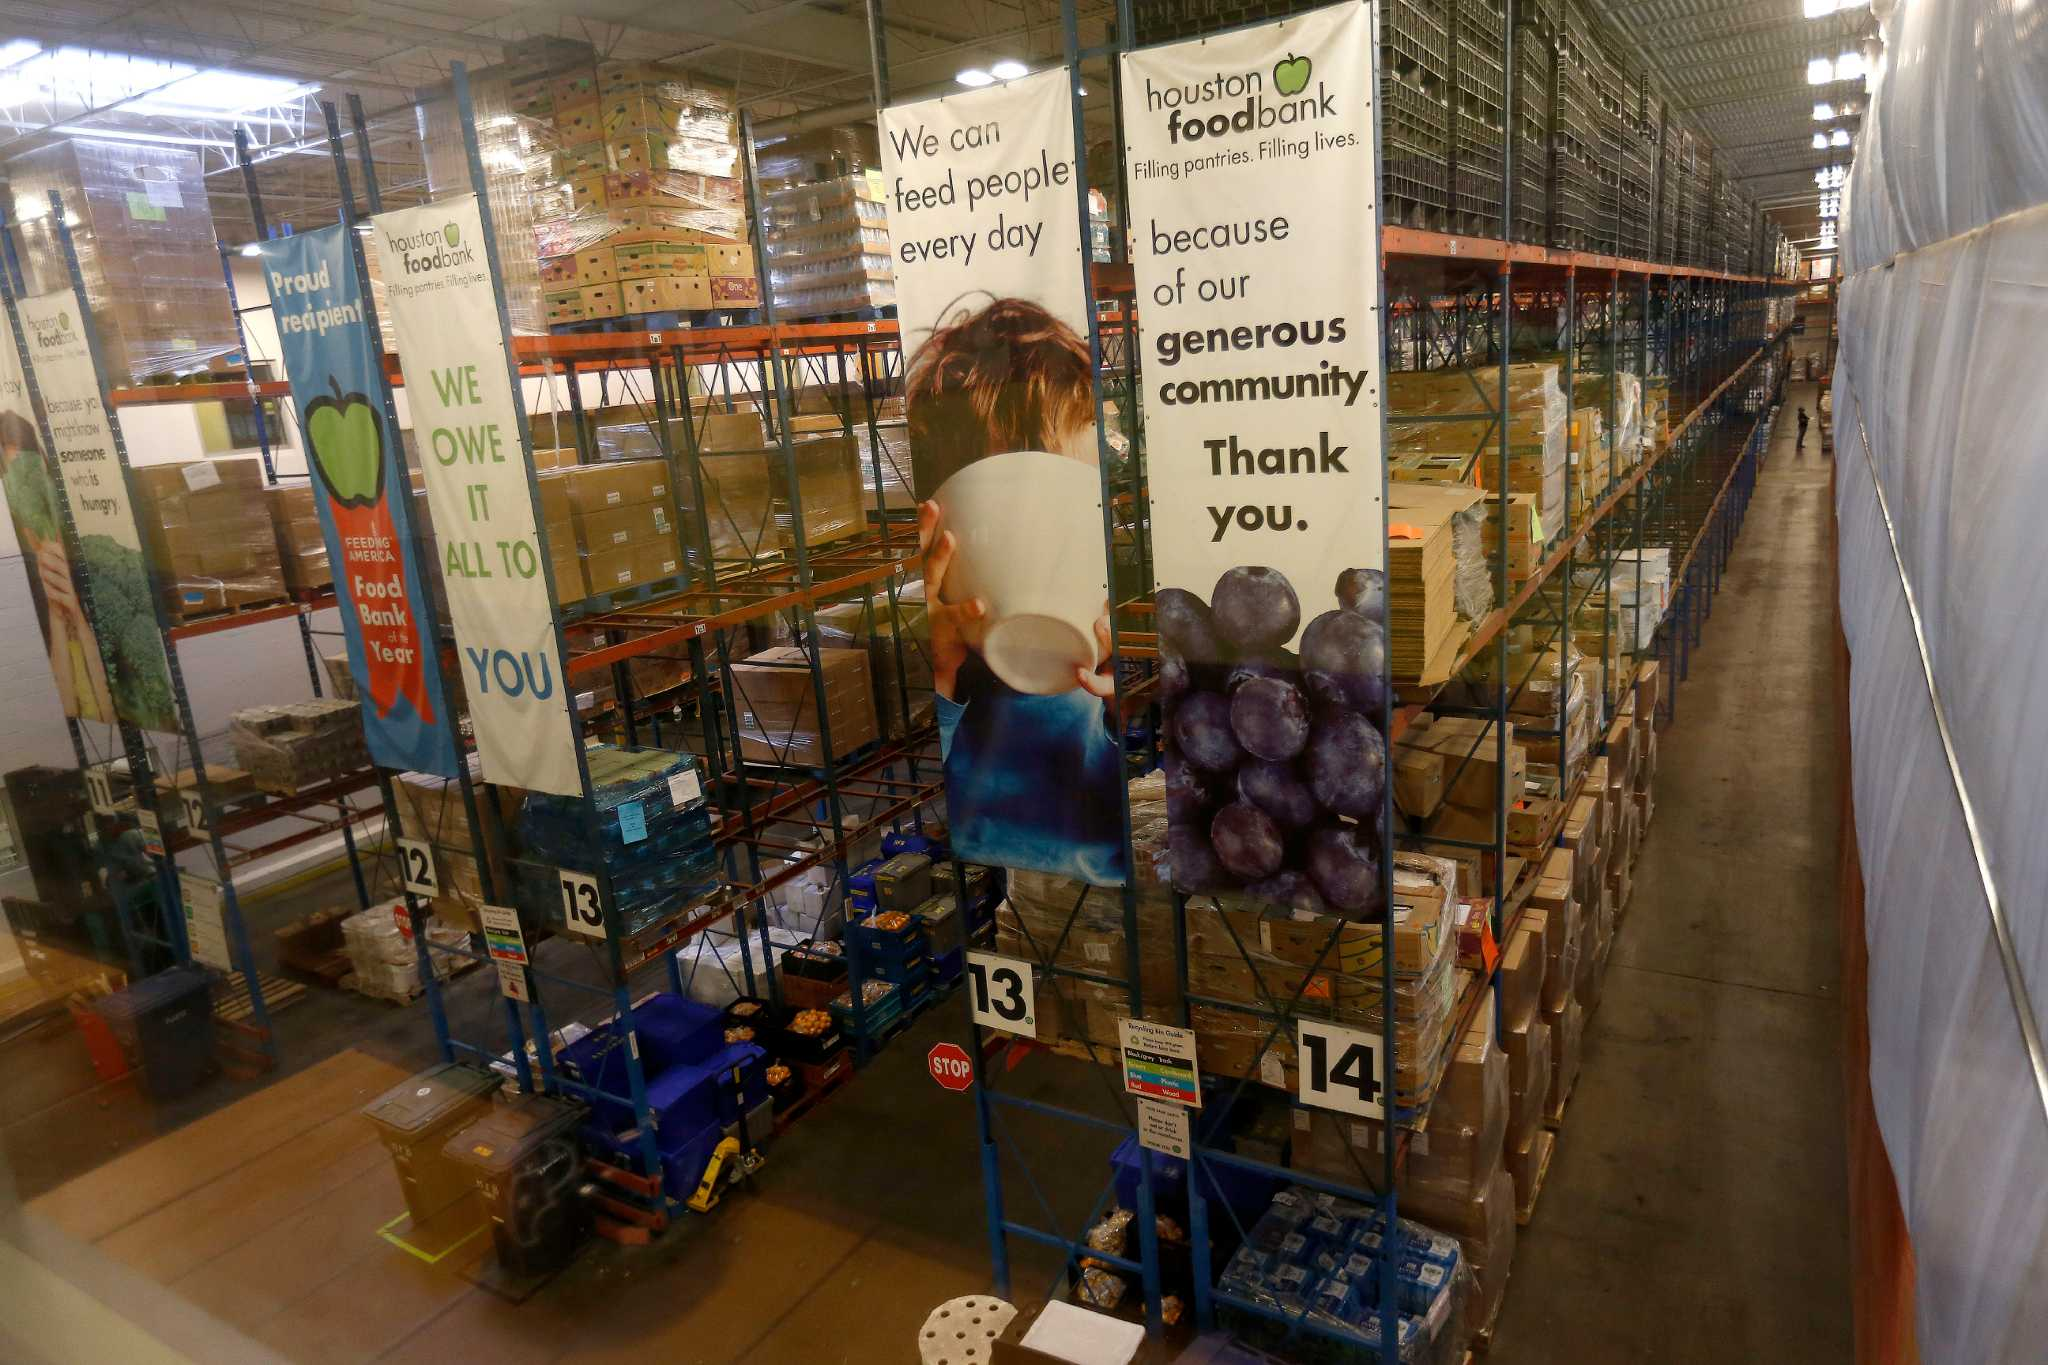 With move Houston Food Bank expands kitchen capacity Houston